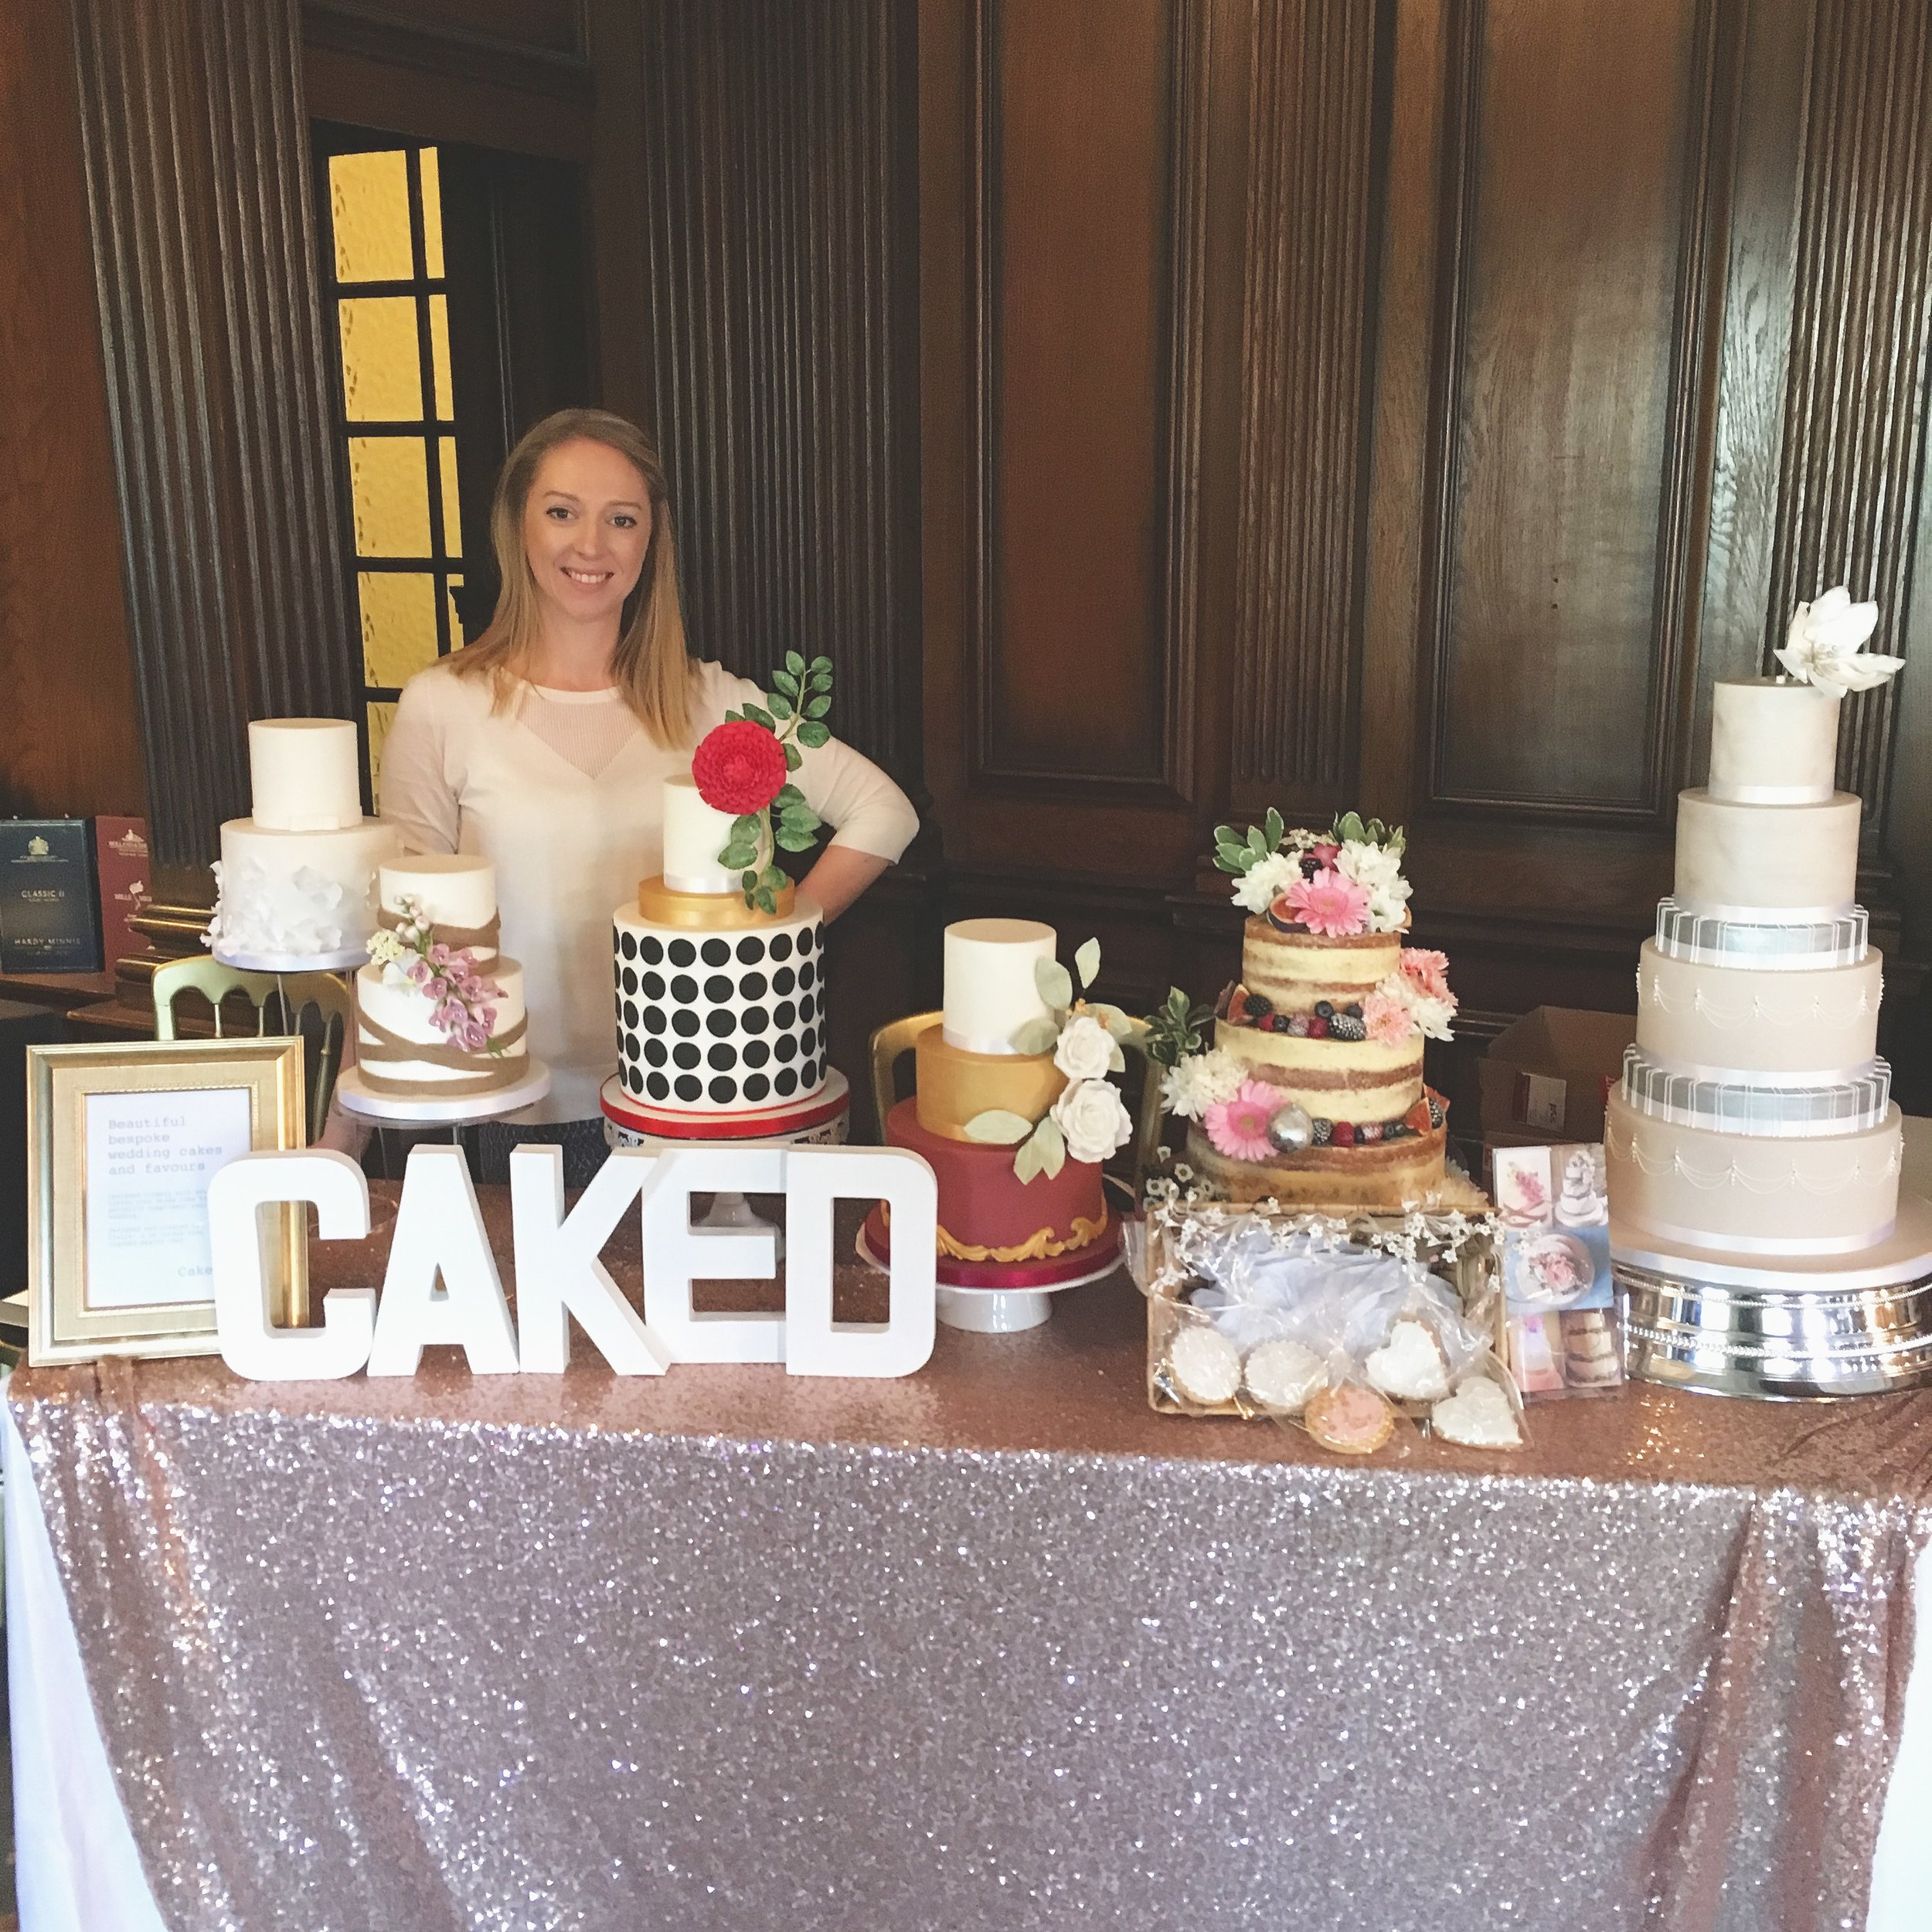 Caked Stand Heatherden Hall Wedding Fair